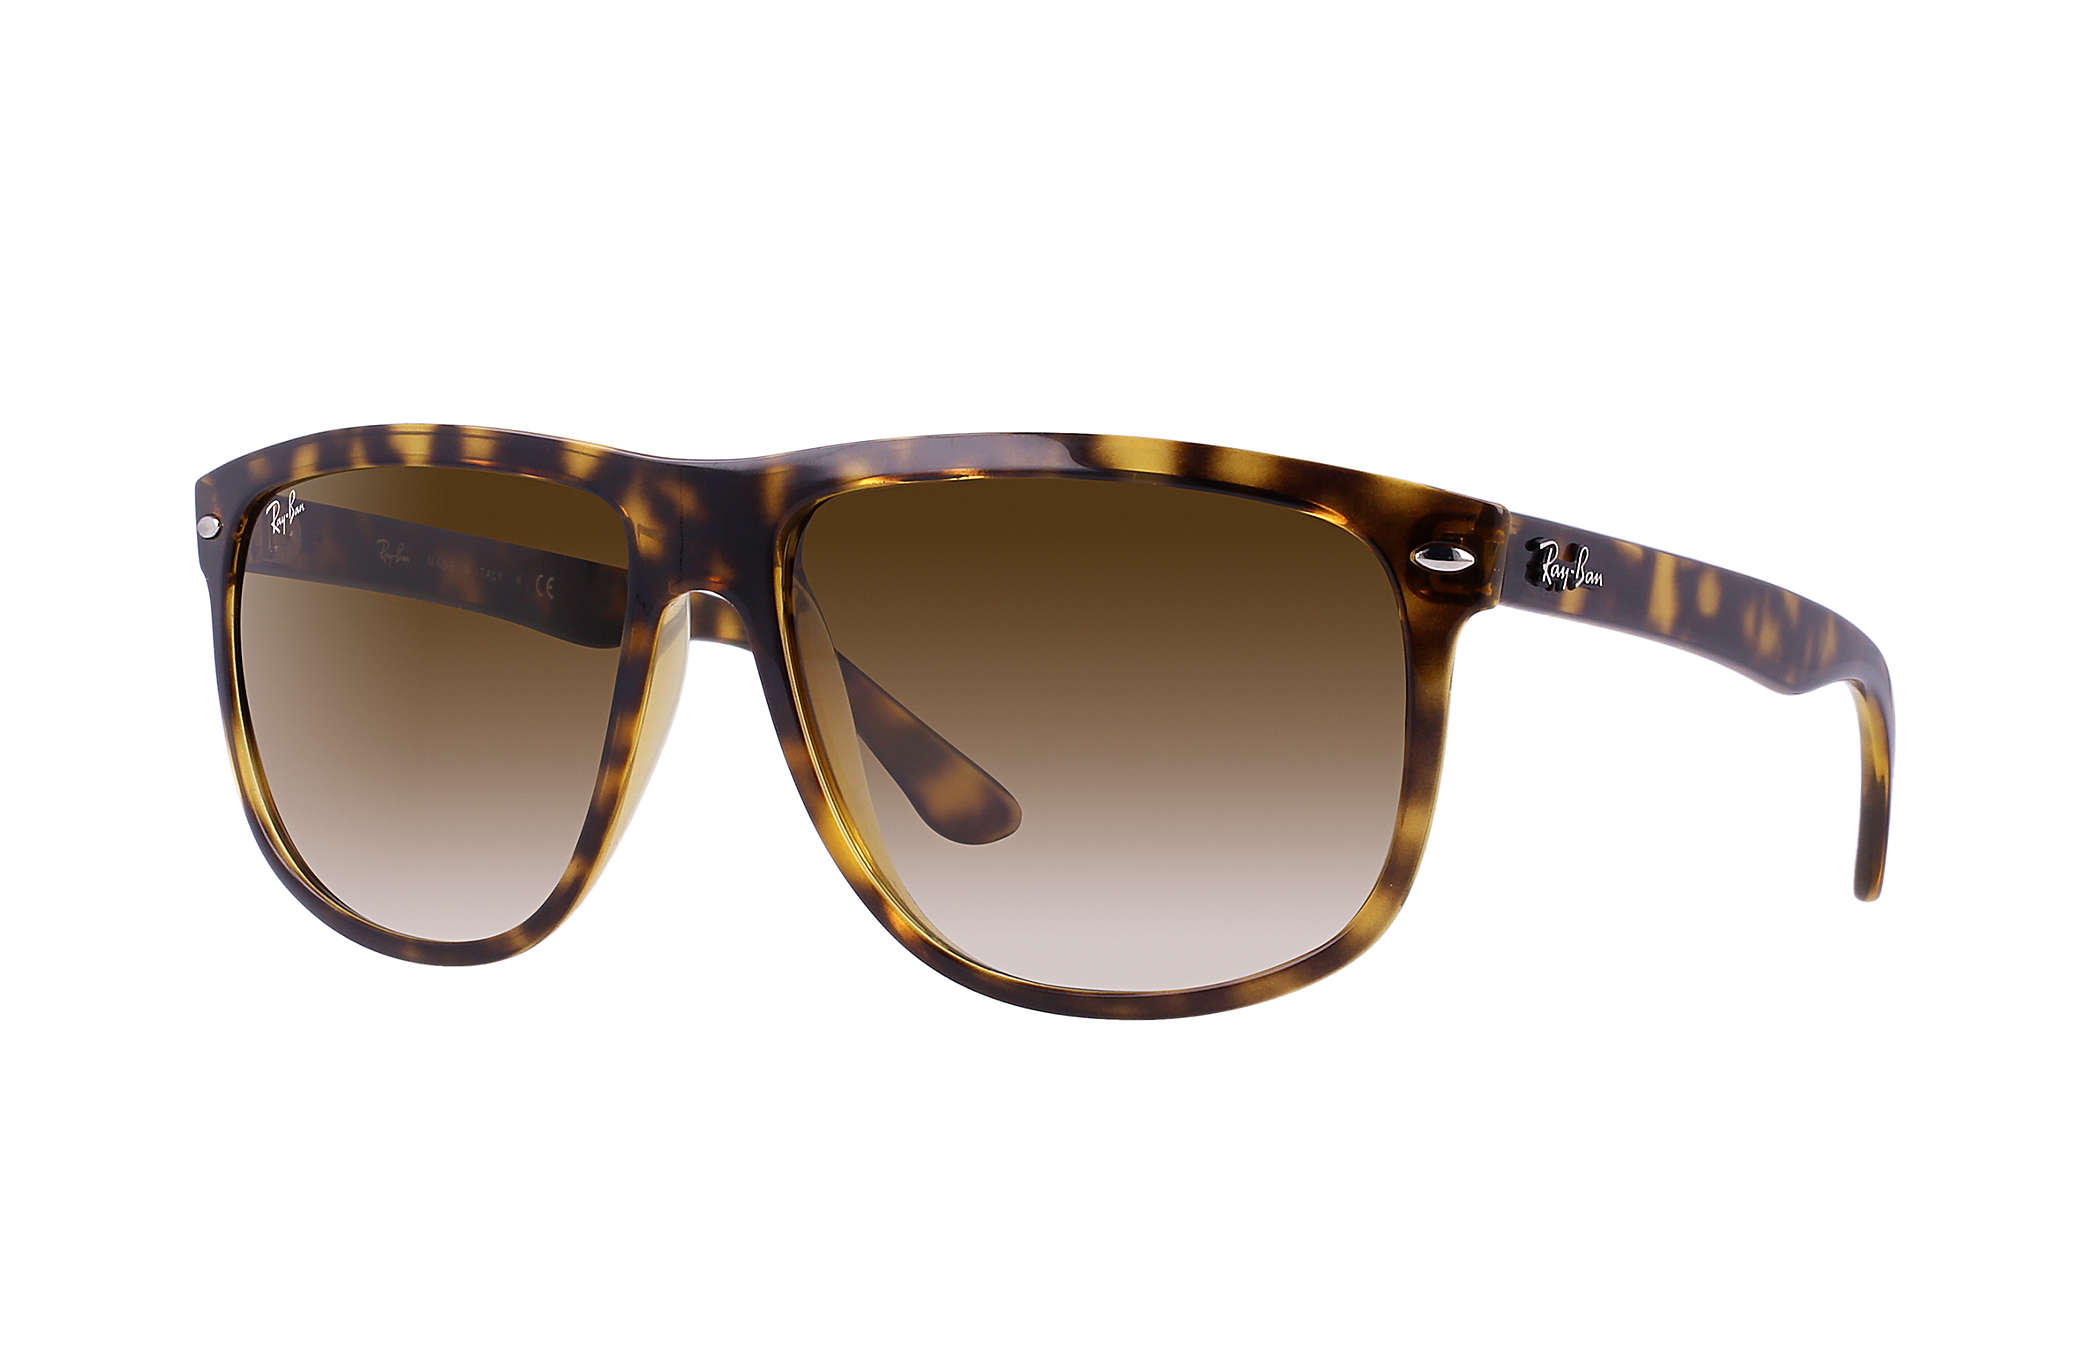 2b3bb5d7191c9 ... discount code for ray ban 0rb4147 rb4147 tortoise sun 8575c e3678